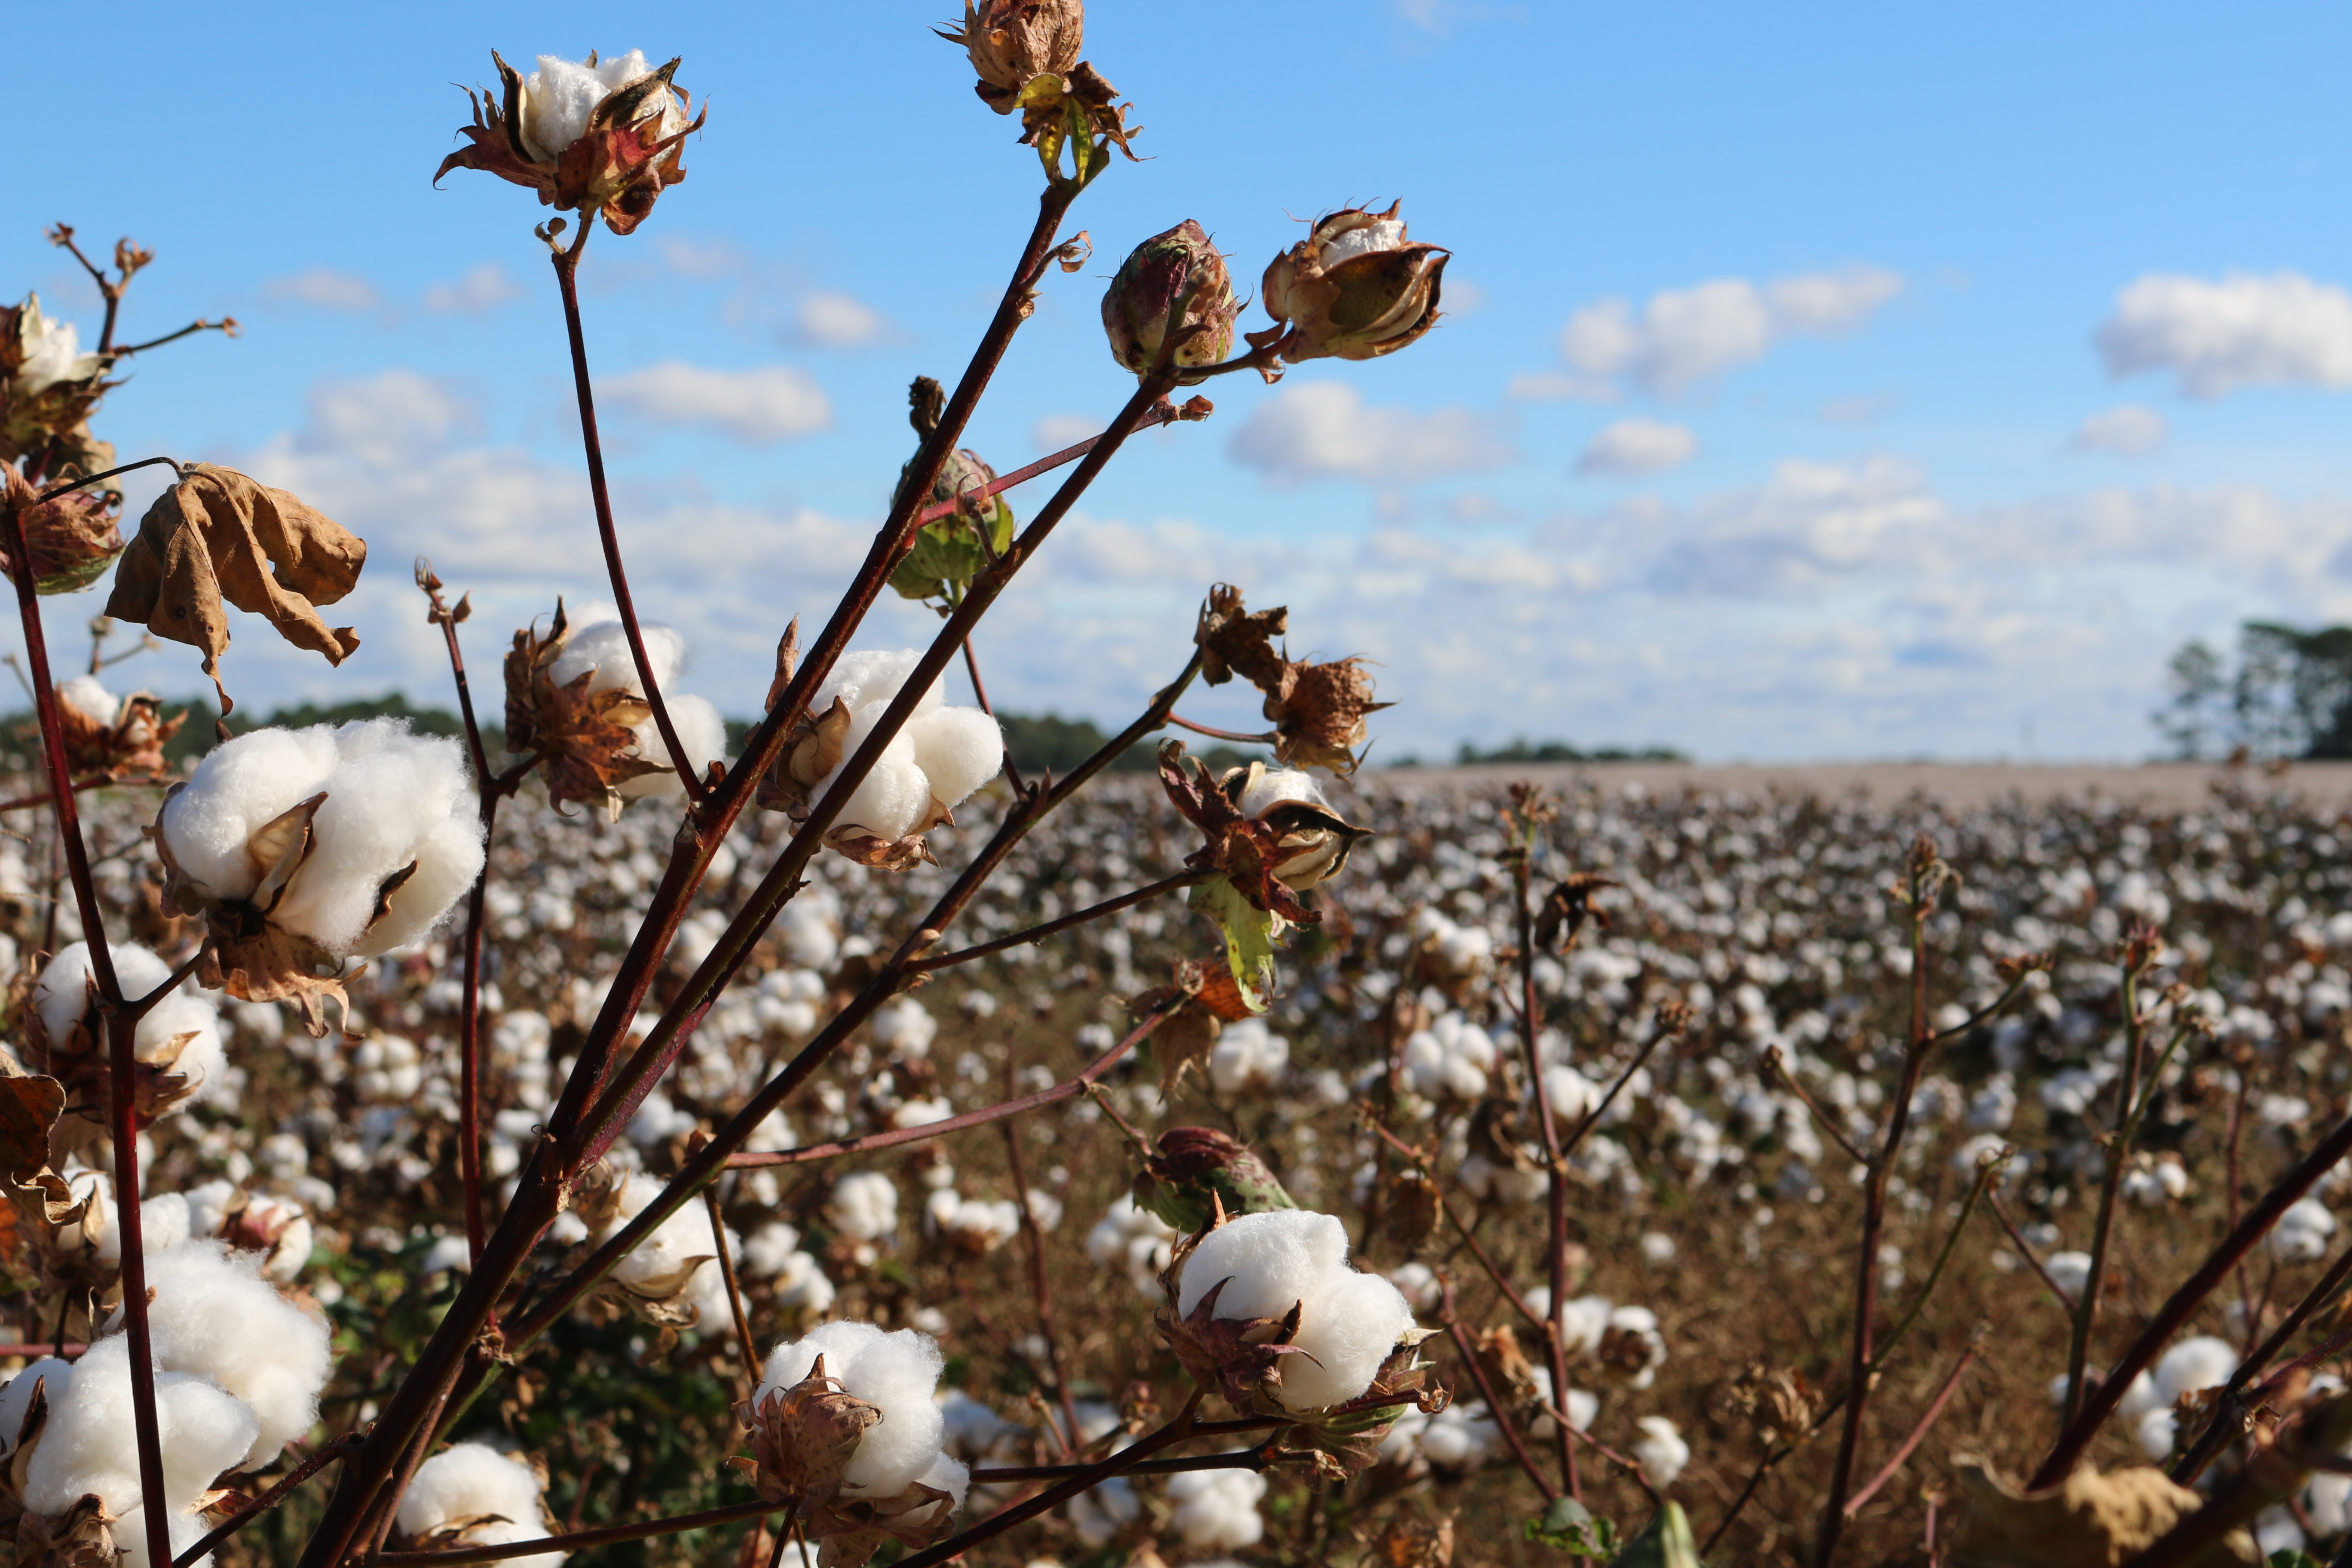 Cottonseed Hummus, Anyone? Texas A&M Researchers Win USDA Approval, Hope to Help Feed the World with Cotton